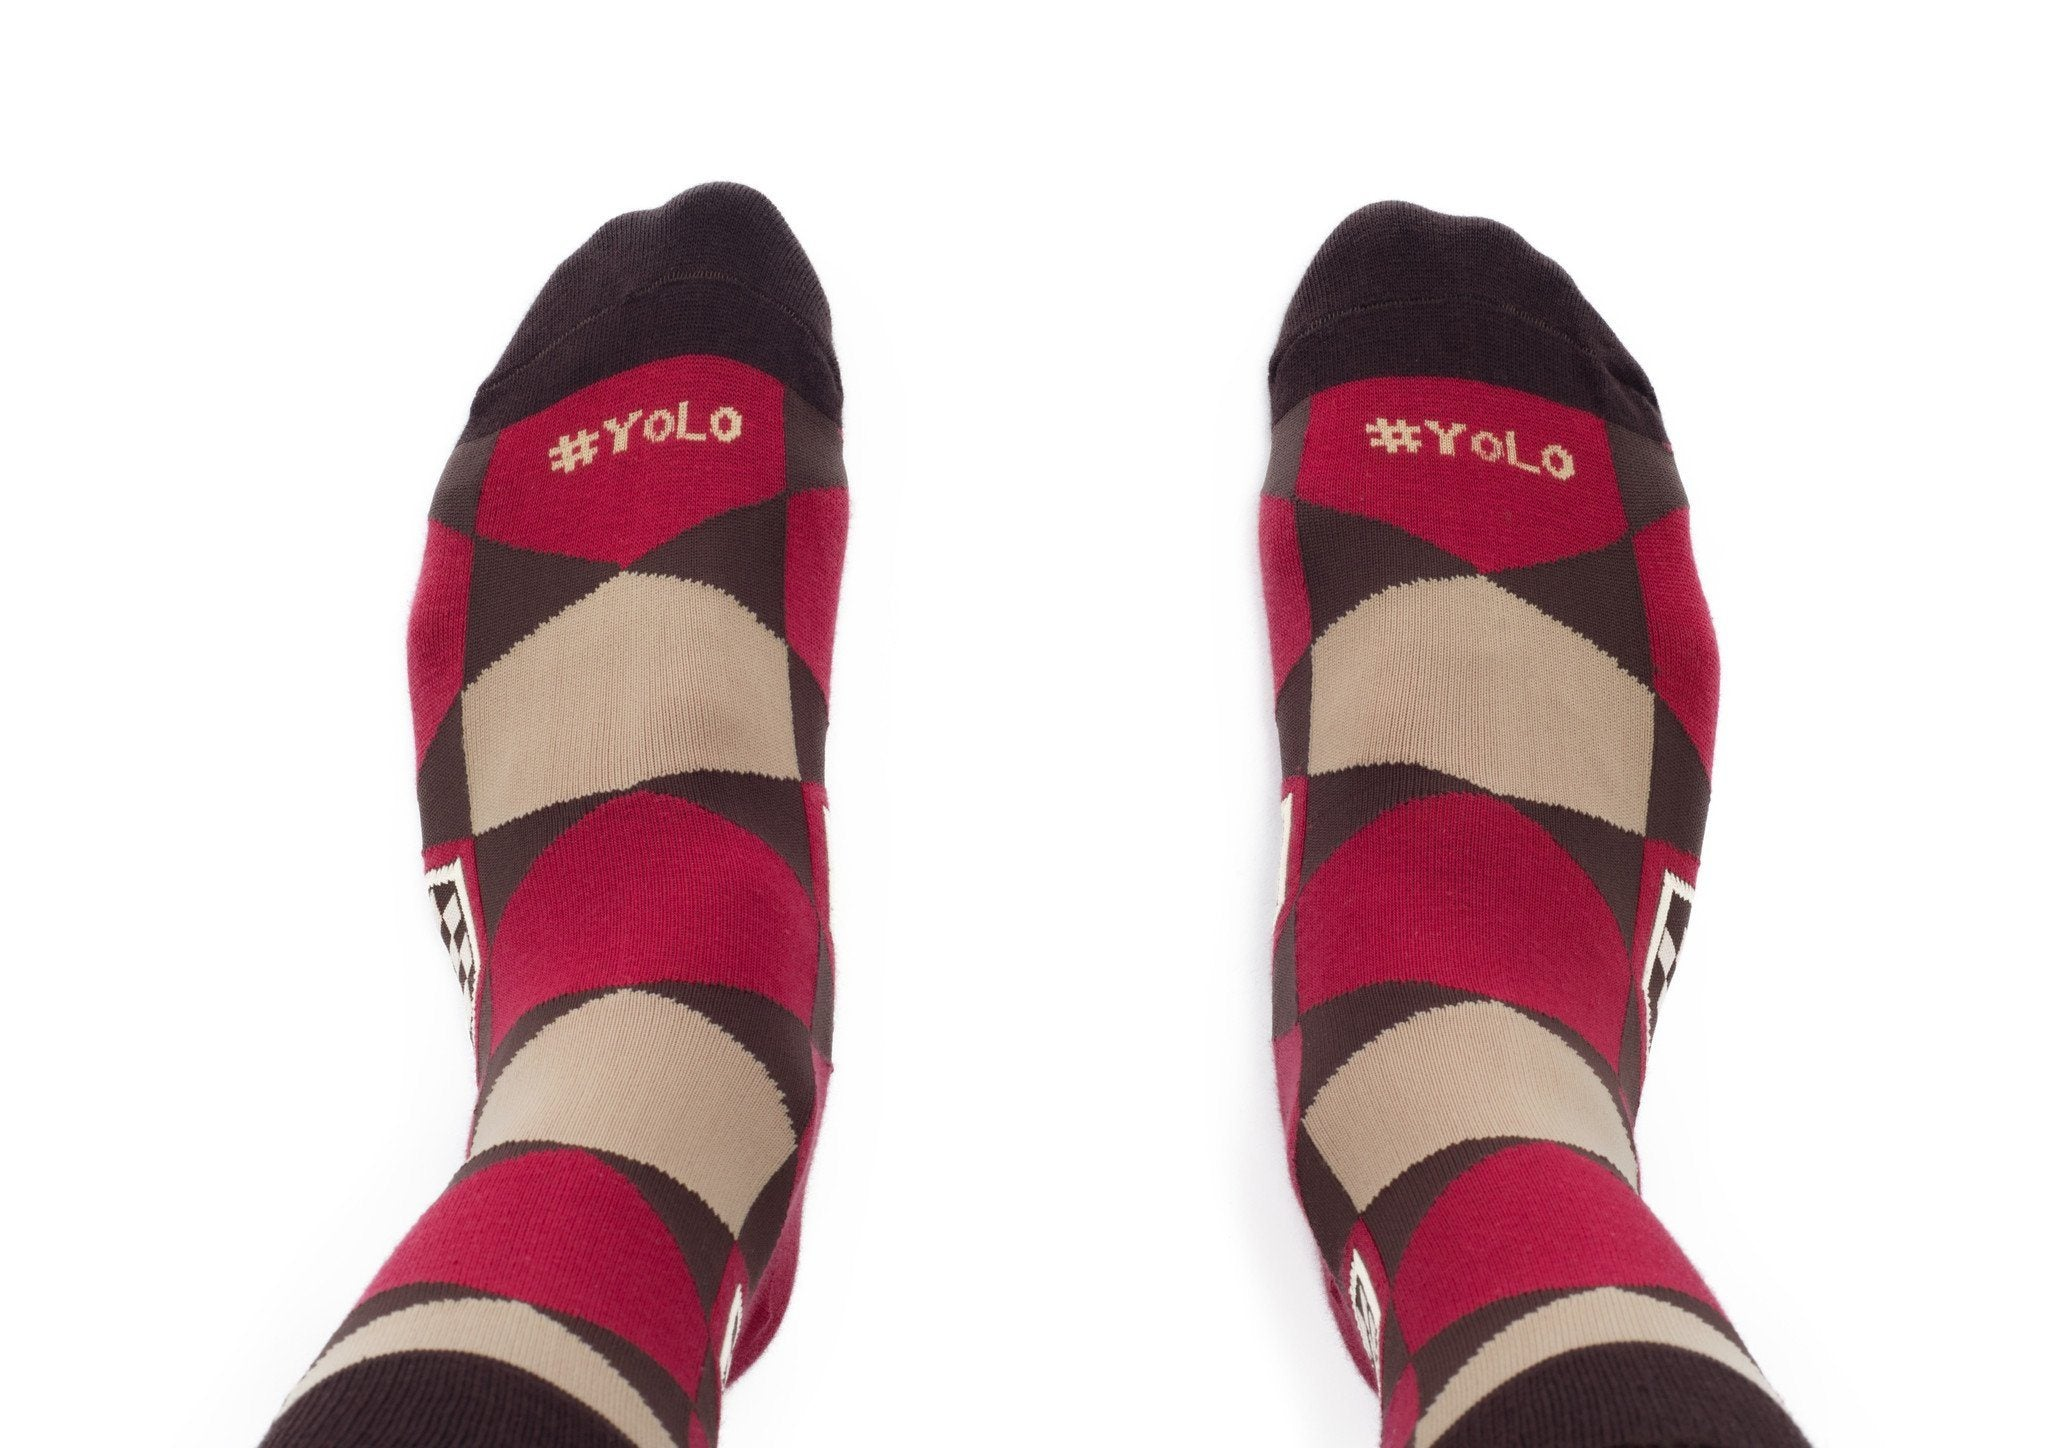 #YOLO Socks - Socks - Talking Toes - Naiise